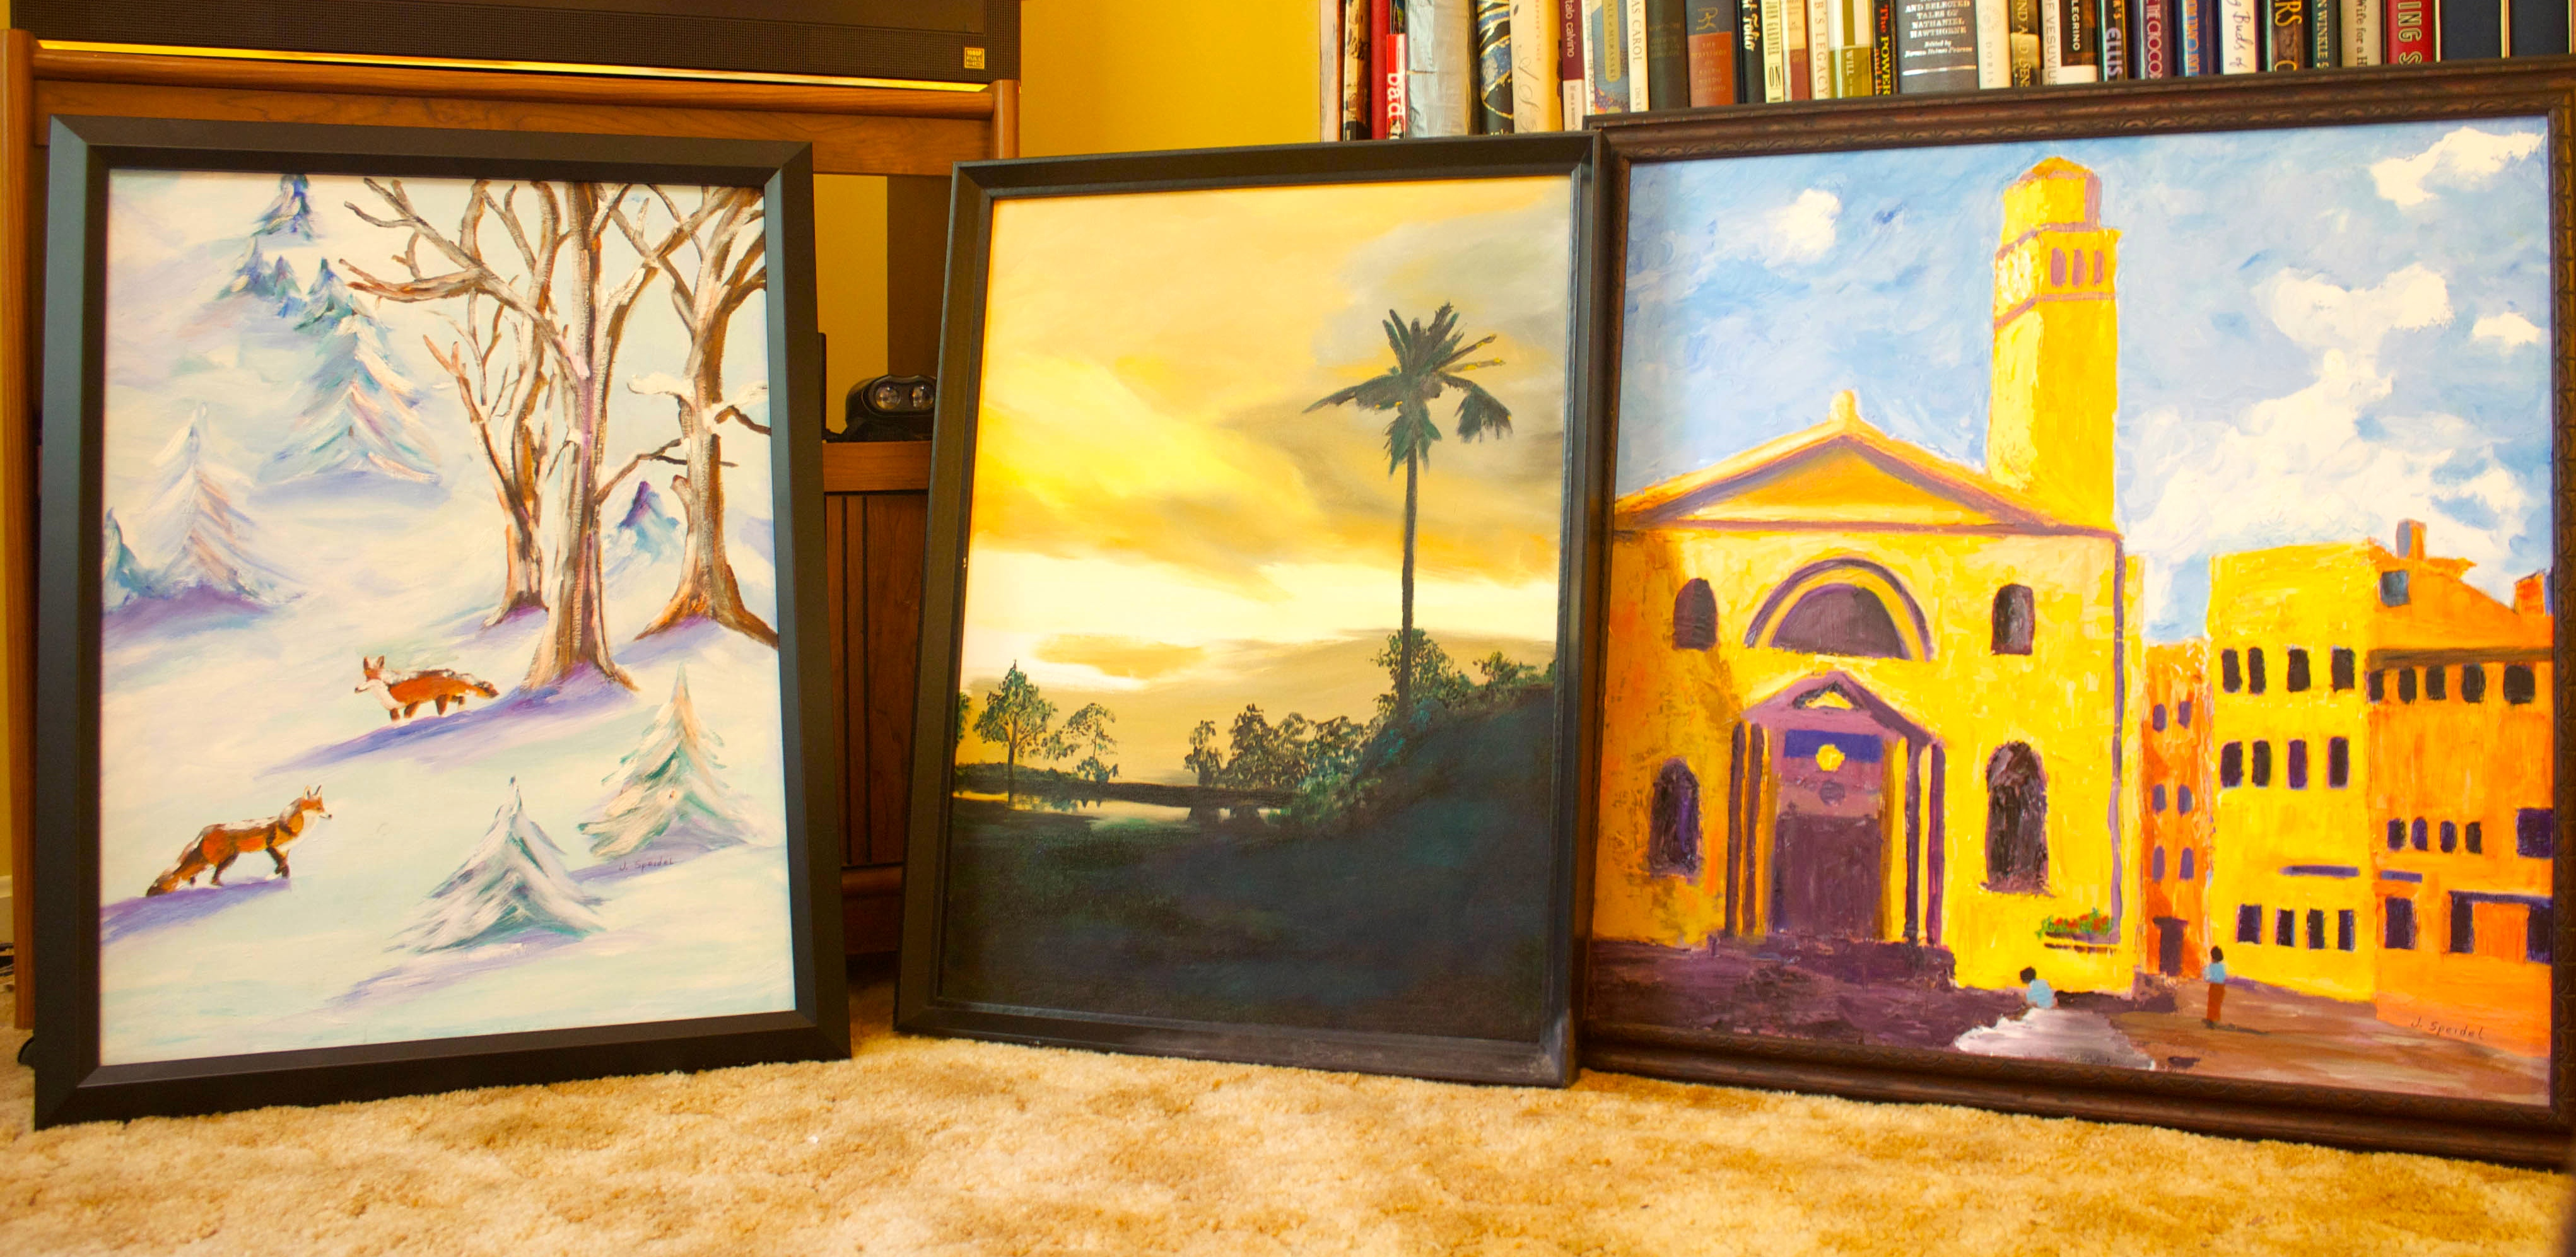 Newbury Author/Painter to Showcase Integrated Art Forms at GANG Program